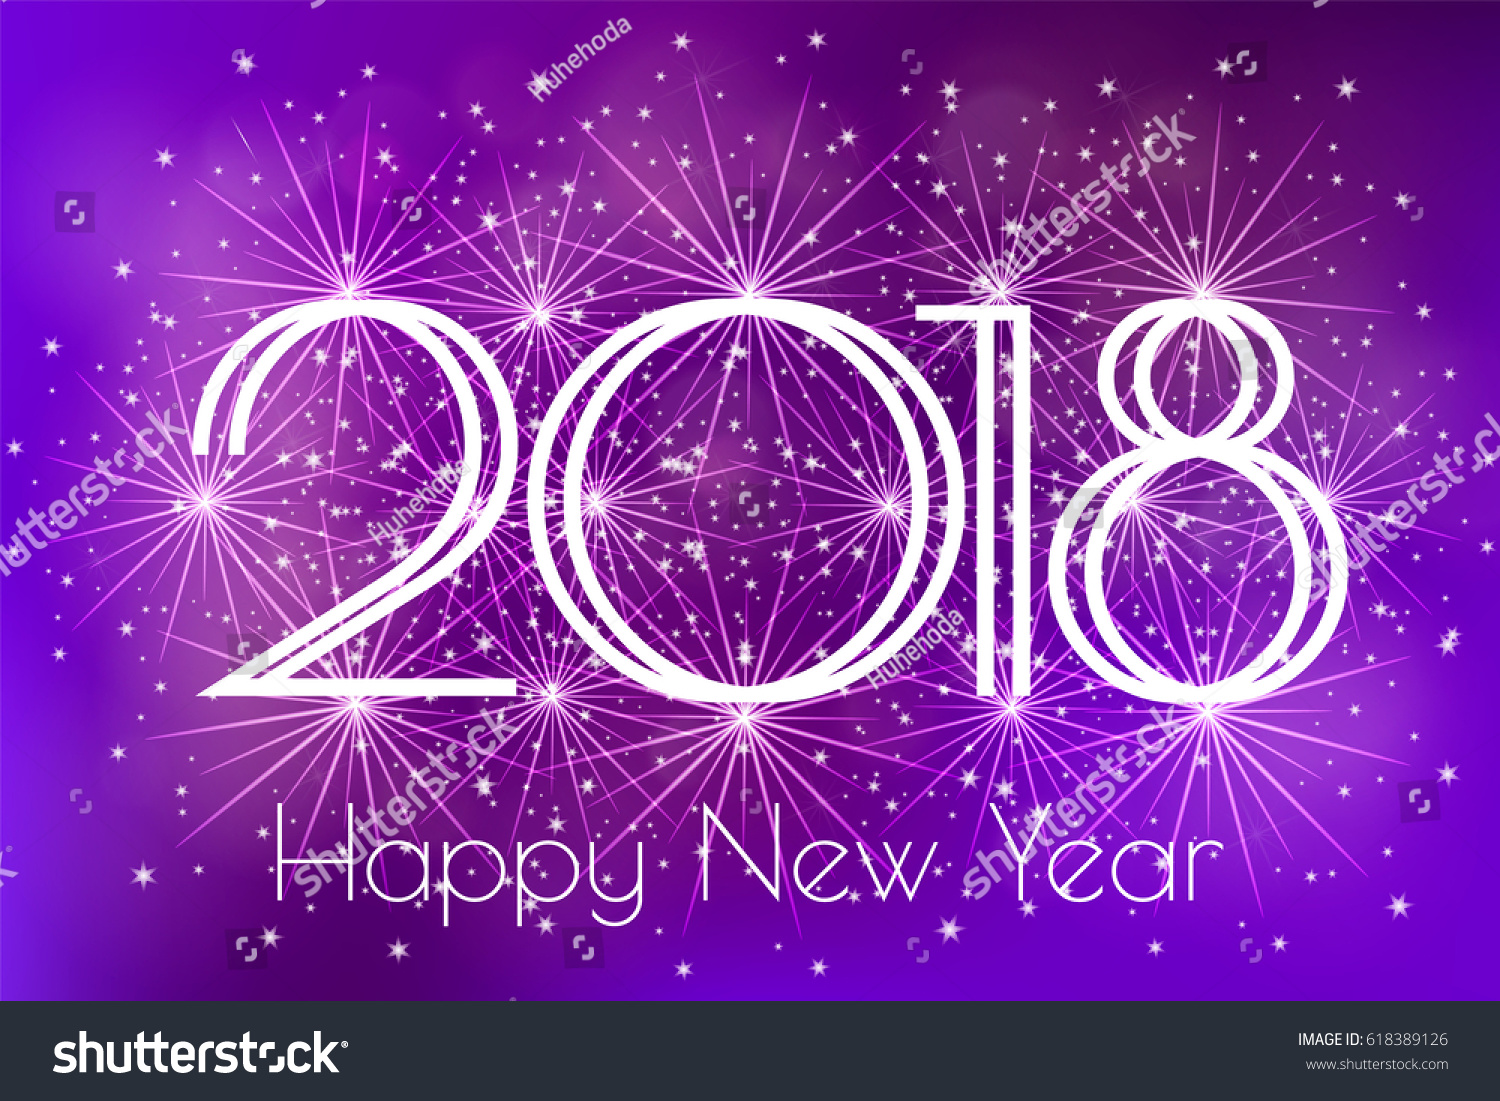 happy new year 2018 card with blue fireworks glowing fire on blurred blue purple background